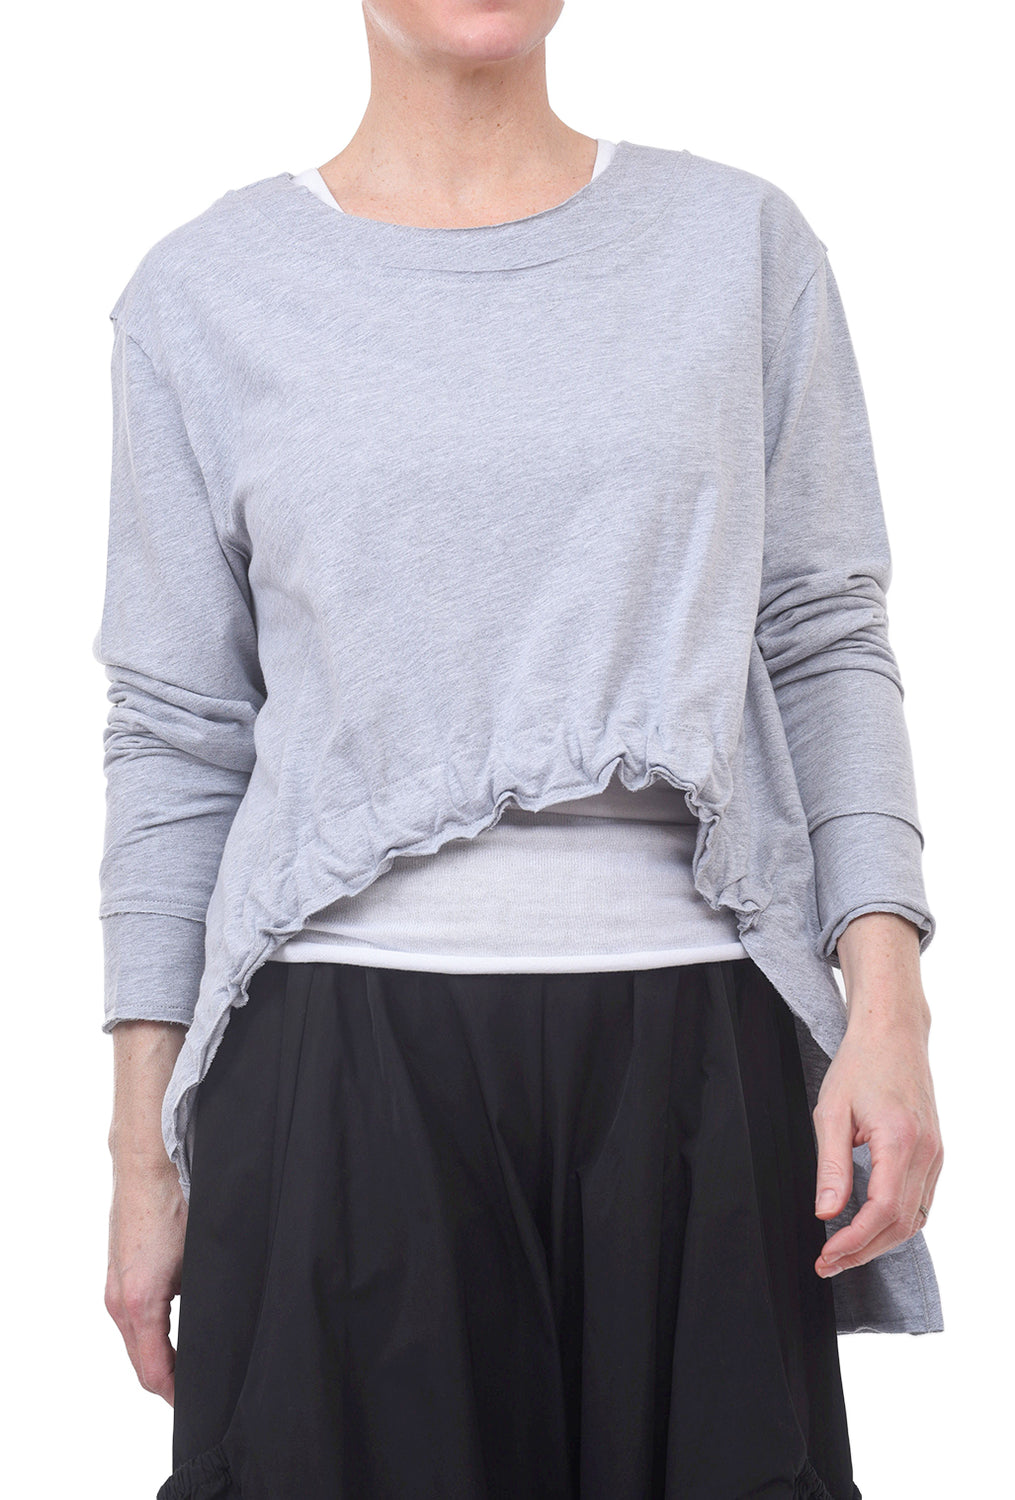 Planet Drawstring Sweatshirt Top, Heather Gray